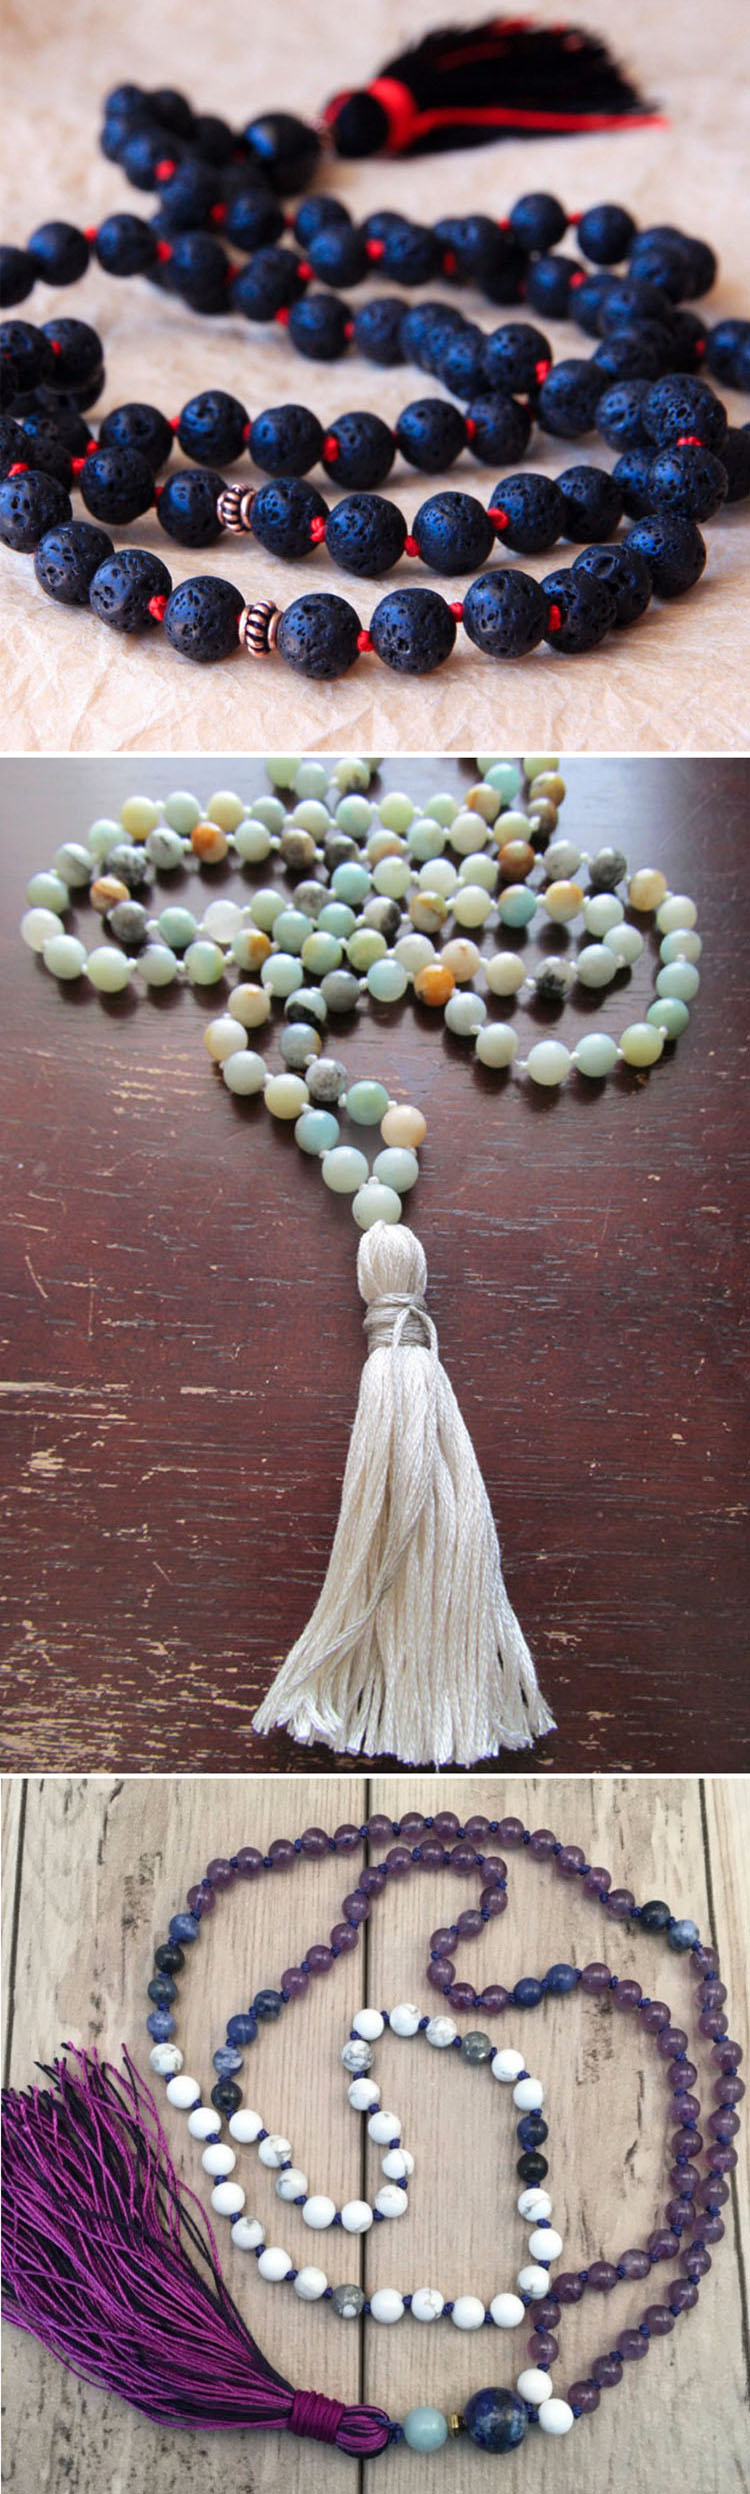 2018 new buddhist prayer beads 108 Mala Beads tassel necklace